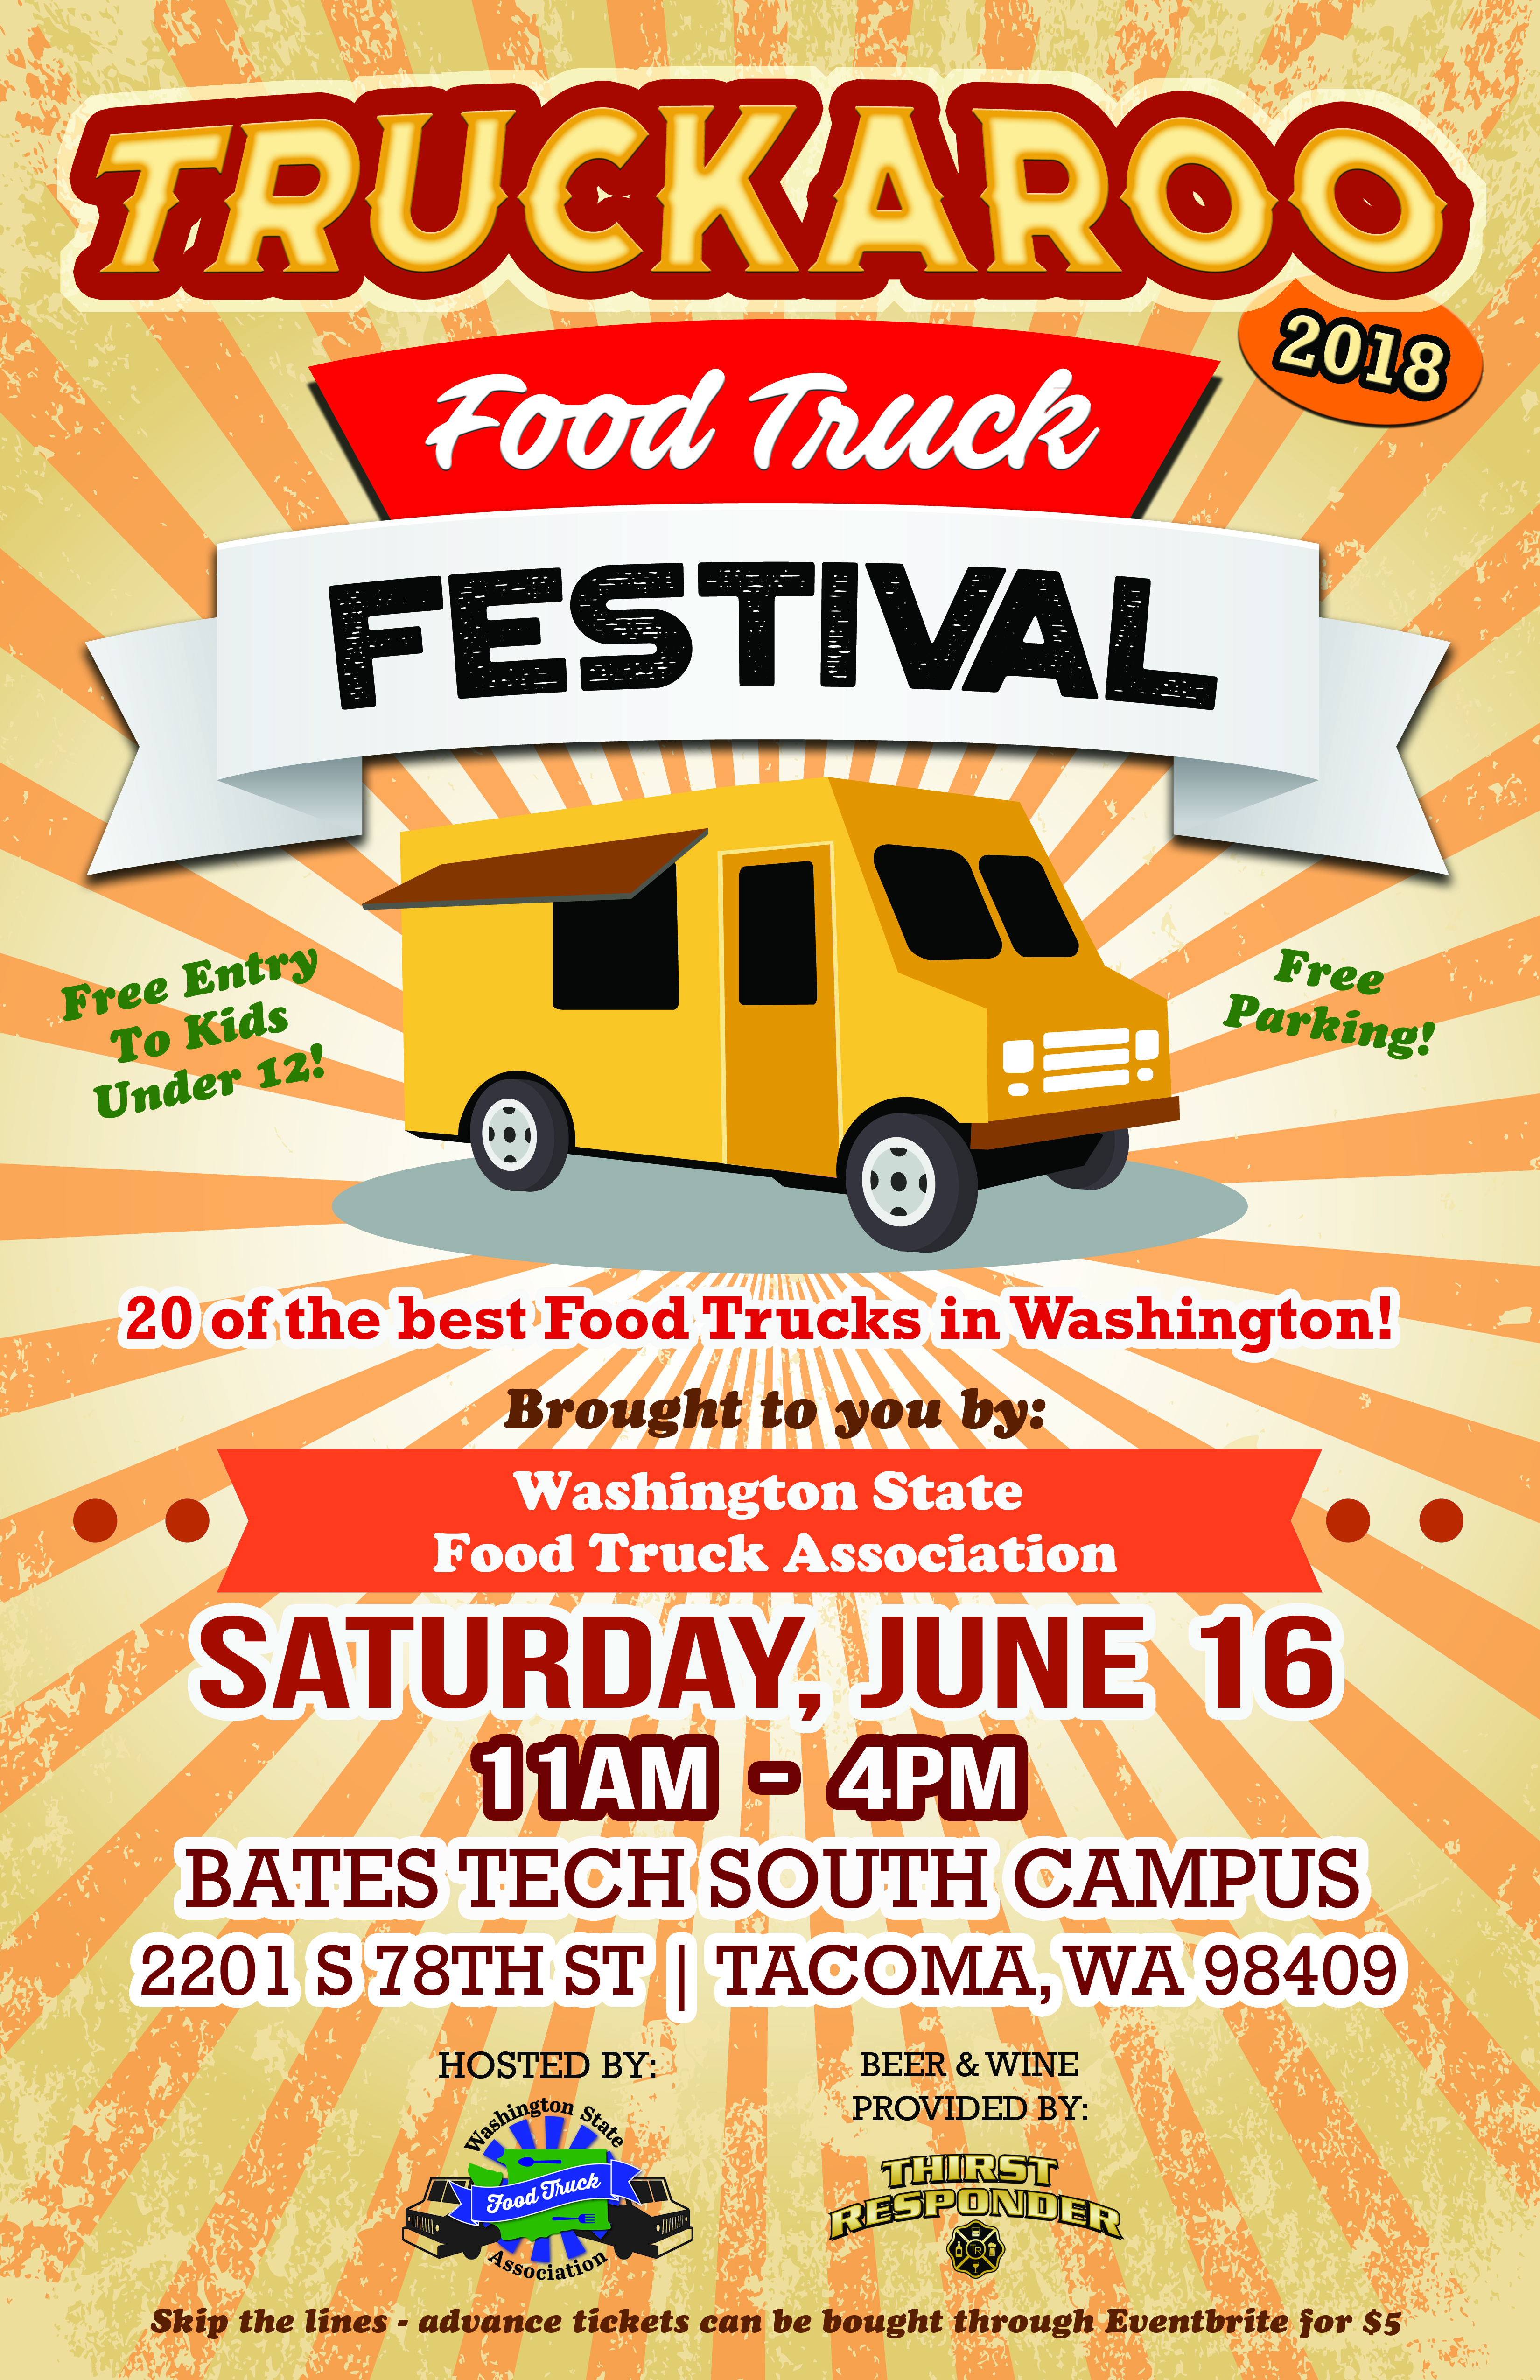 Truckaroo Food Truck Festival Greater Tacoma Community Foundation